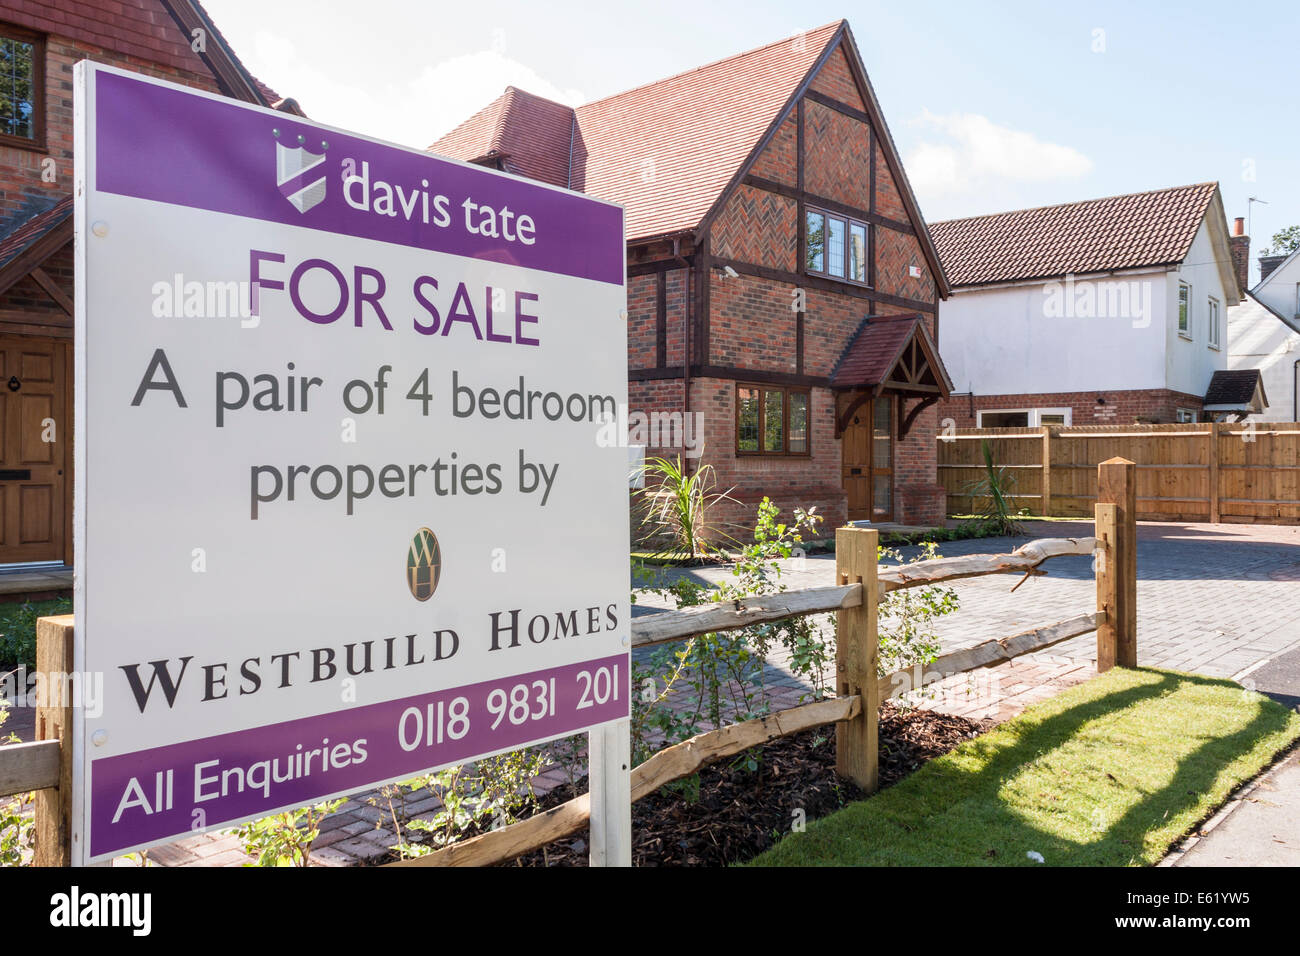 For Sale sign outside new build housing. - Stock Image